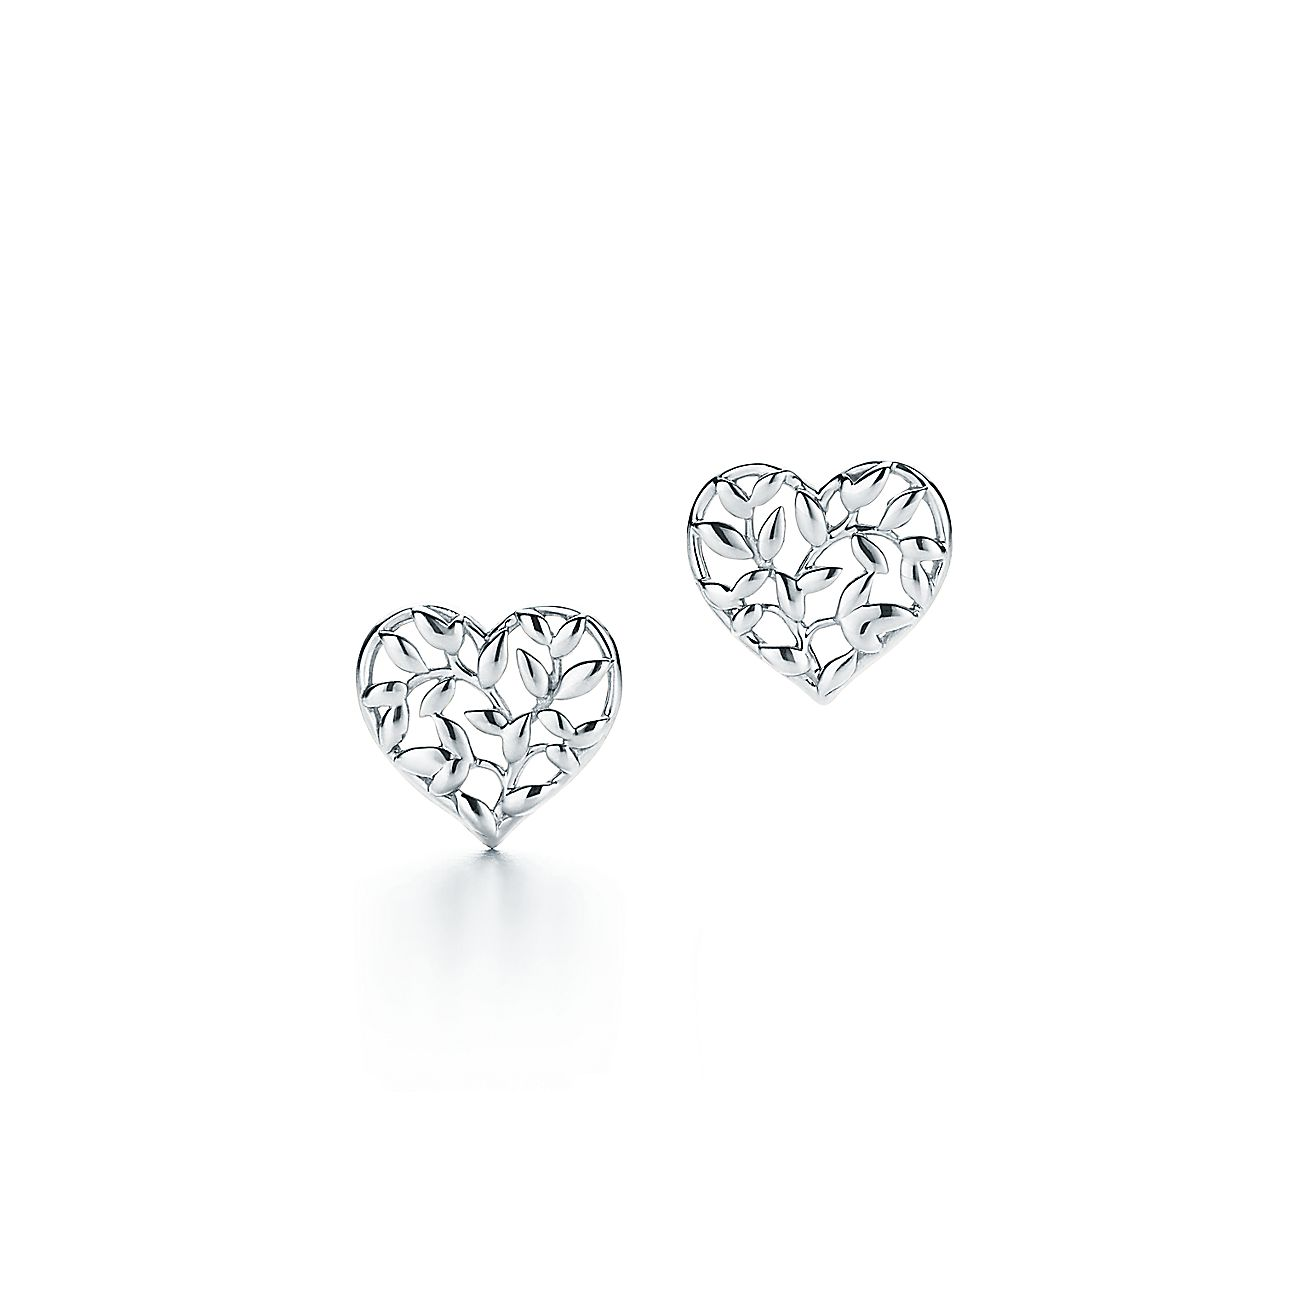 diamond square jewellery stud morganite london and product kiki earrings sloane heart mcdonough